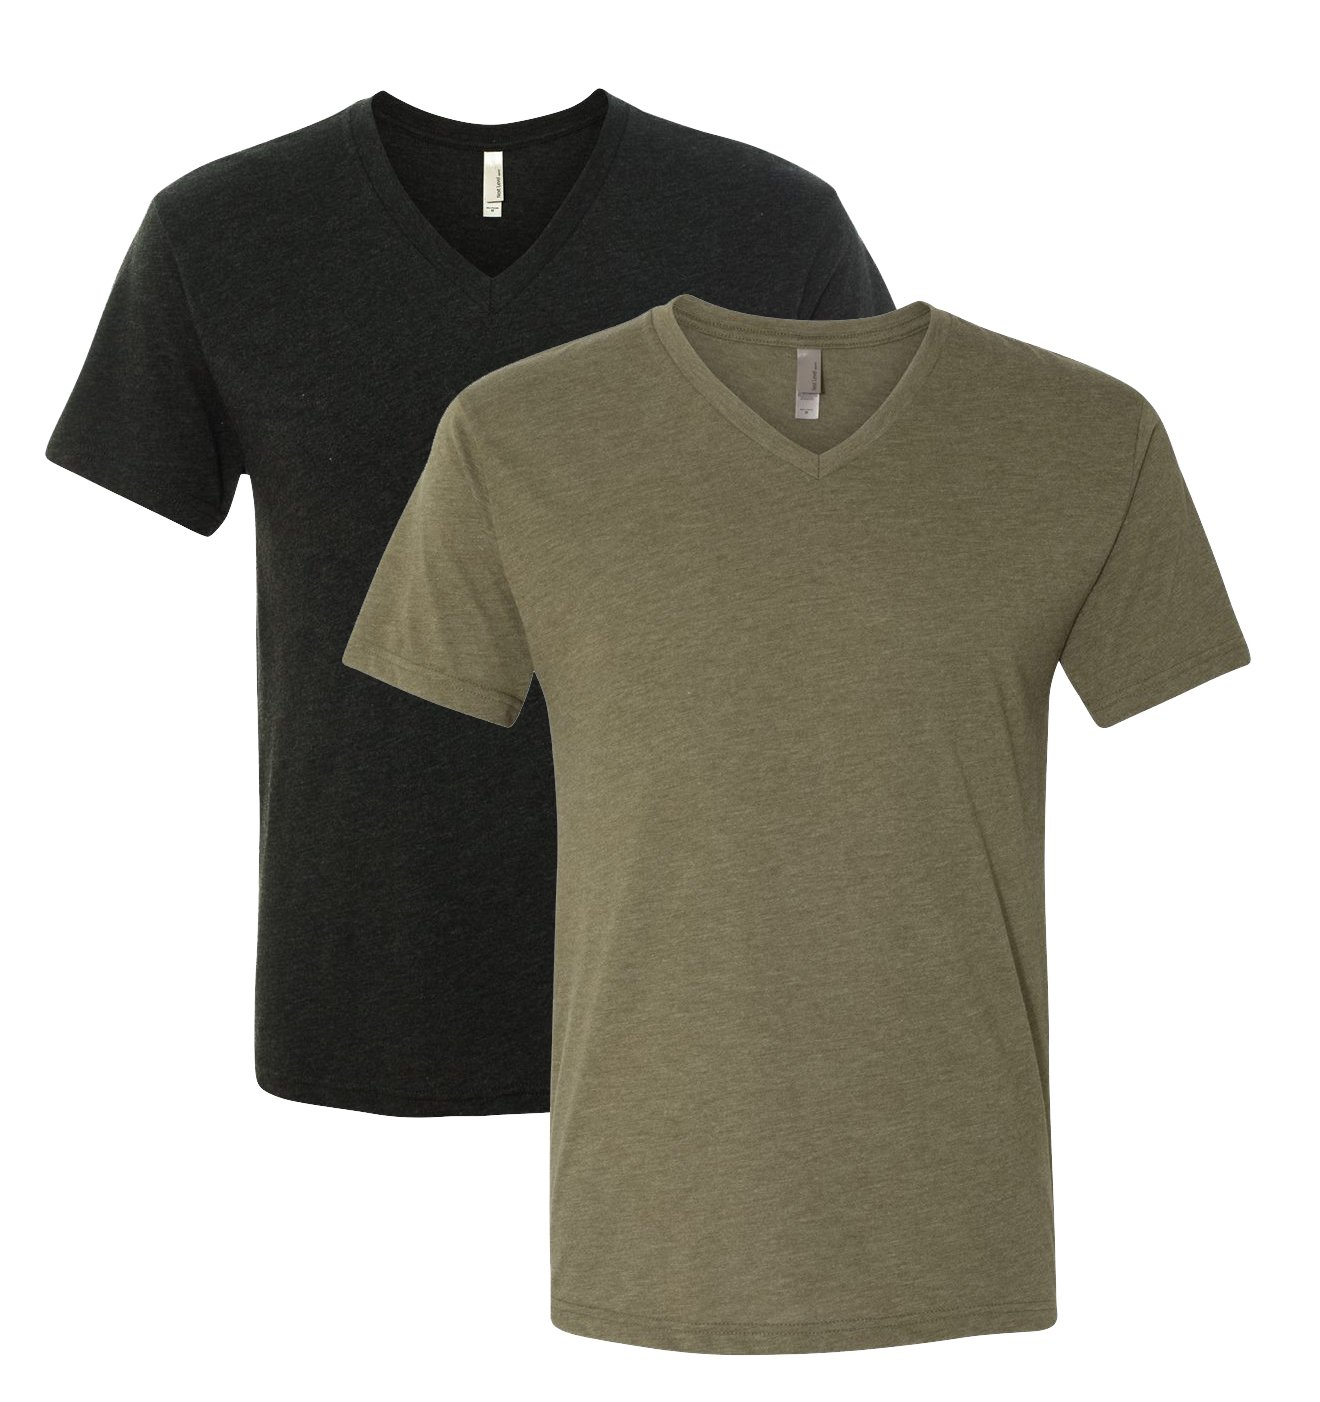 Next Level Triblend Vee Tee, Vintage Black + Military Green (2 Pack), Large